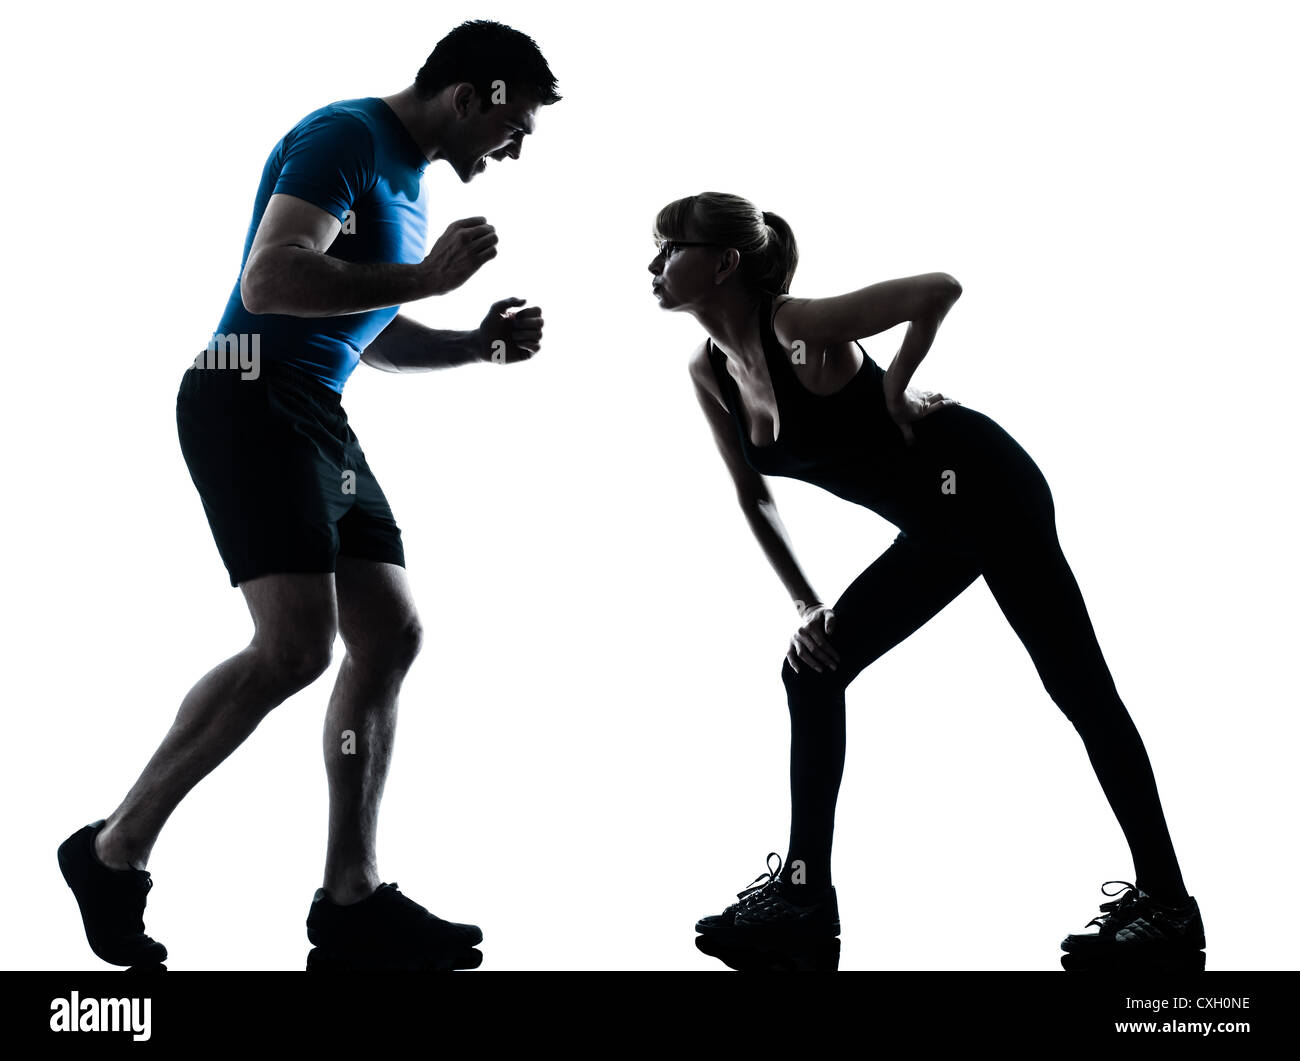 caucasian aerobics instructor  with mature woman exercising fitness workout in silhouette studio isolated on white - Stock Image